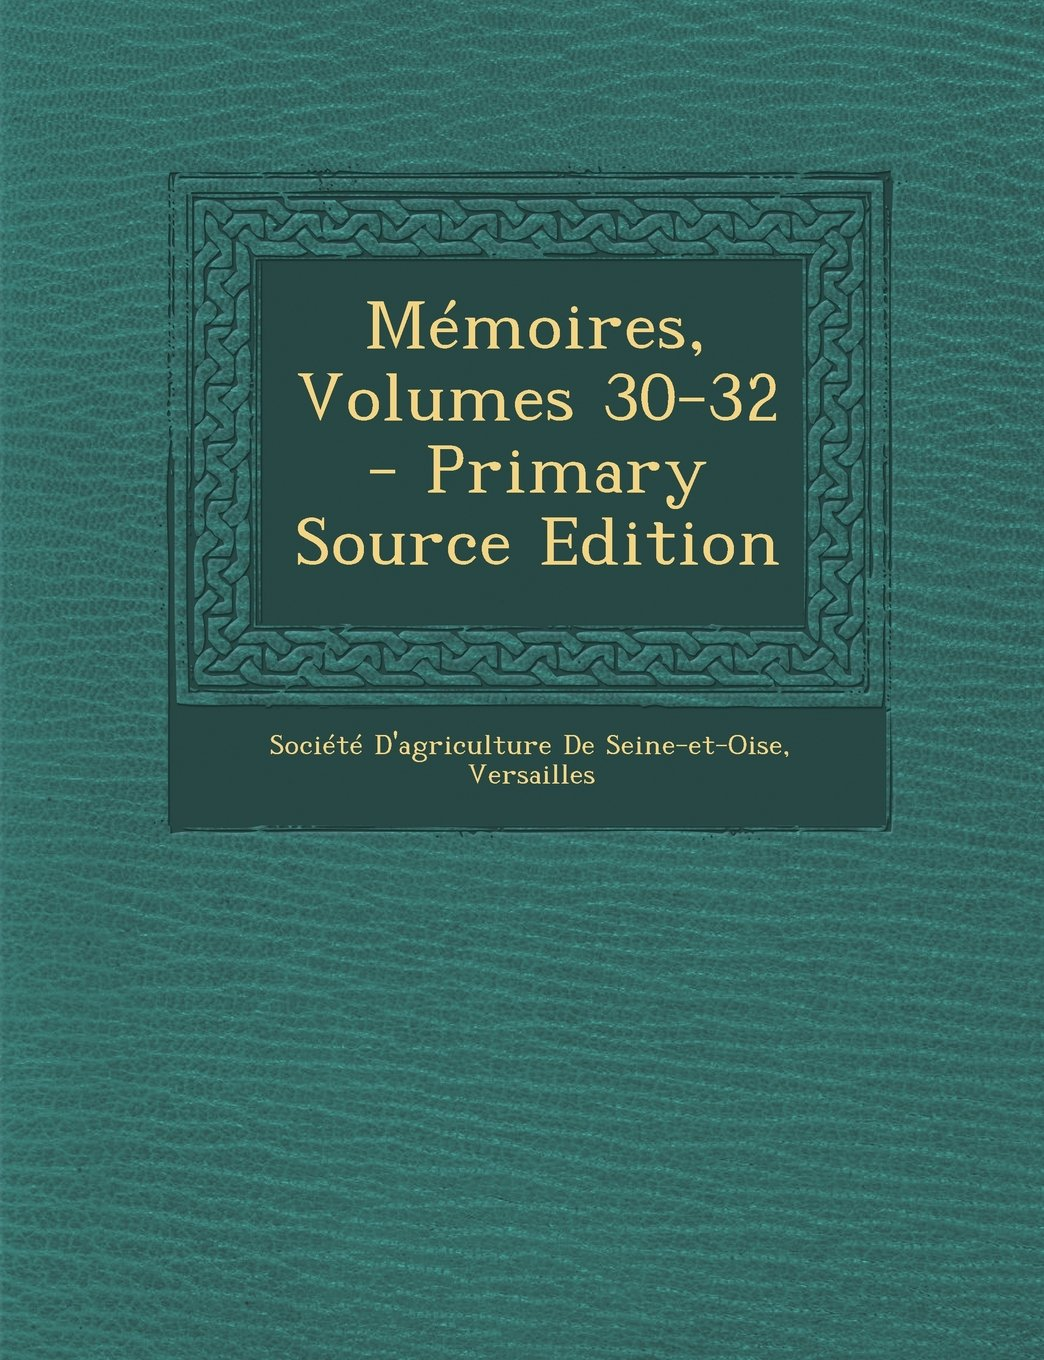 Memoires, Volumes 30-32 - Primary Source Edition (French Edition) ebook